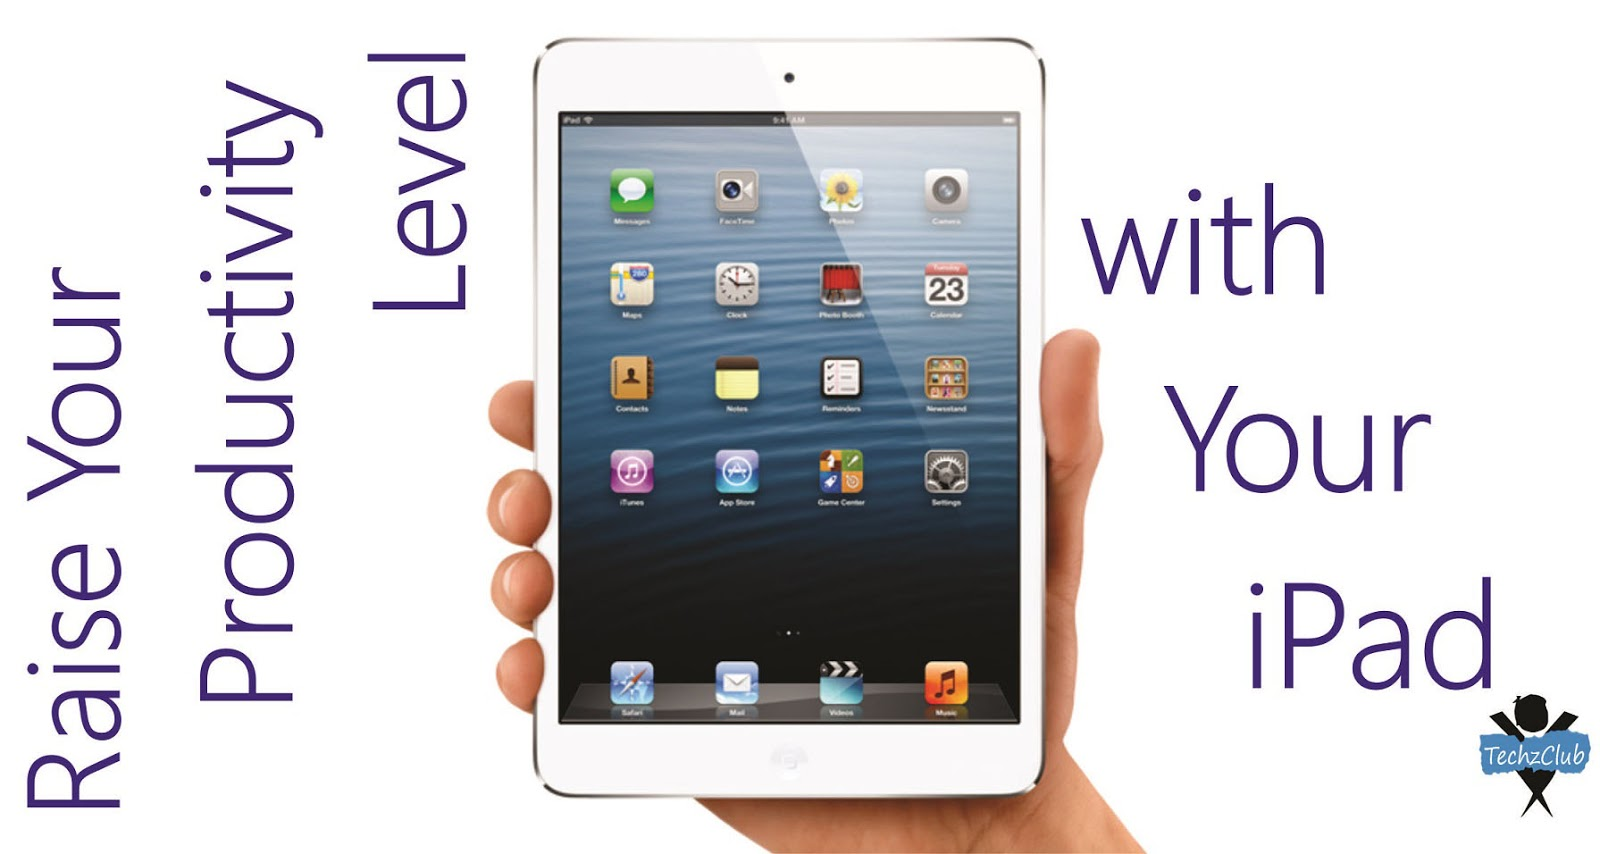 Raise Your Productivity Level with Your iPad !